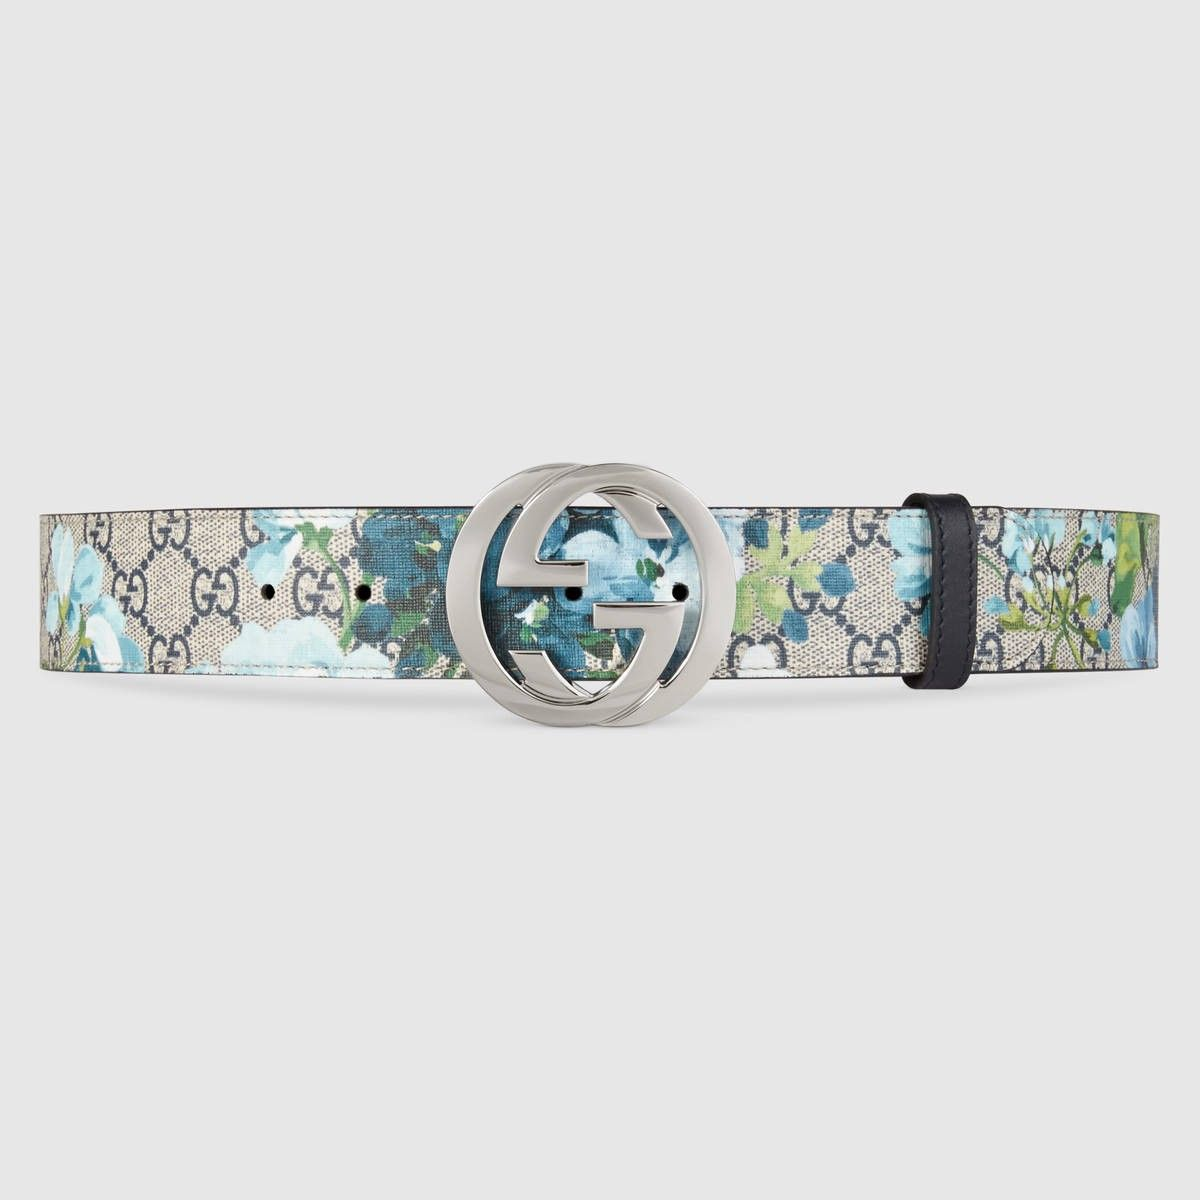 e65c1670799 GUCCI GG Blooms belt with G buckle - blue Blooms print.  gucci ...